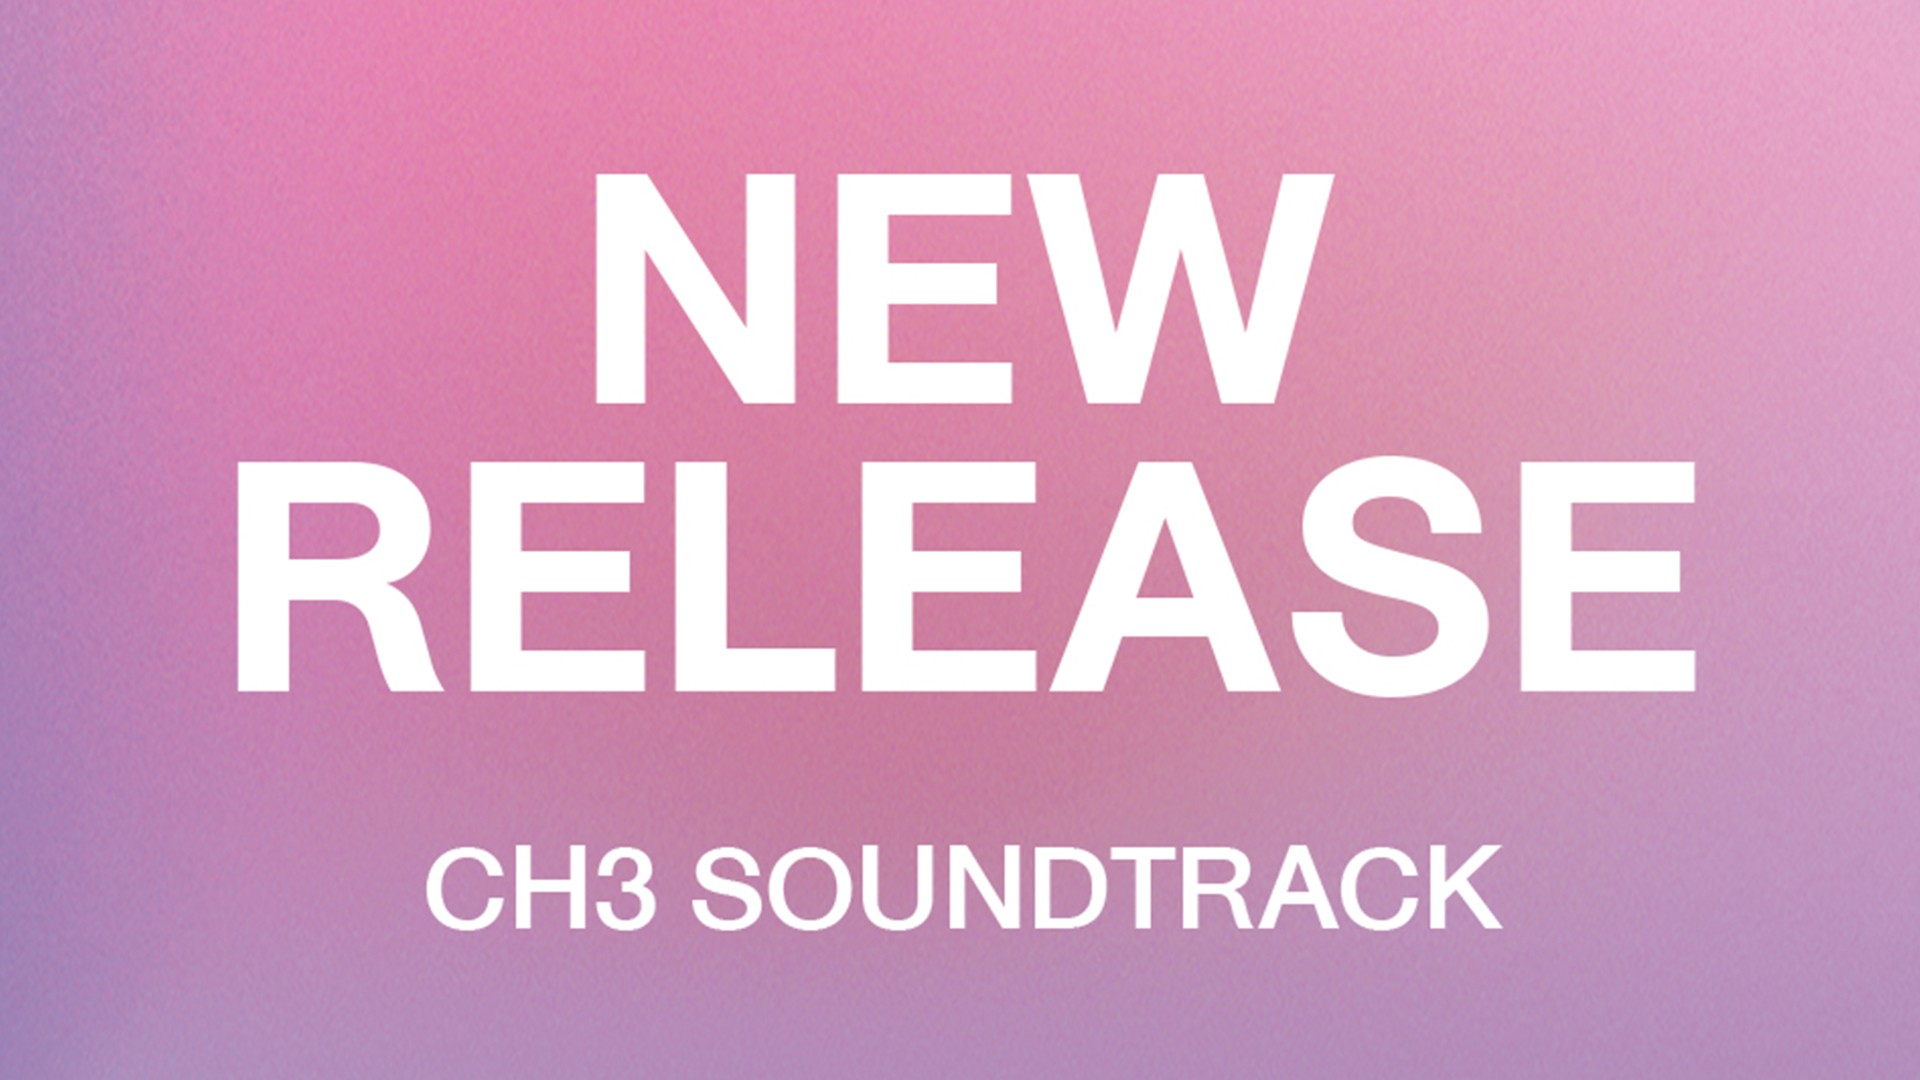 New Release CH3 Soundtrack